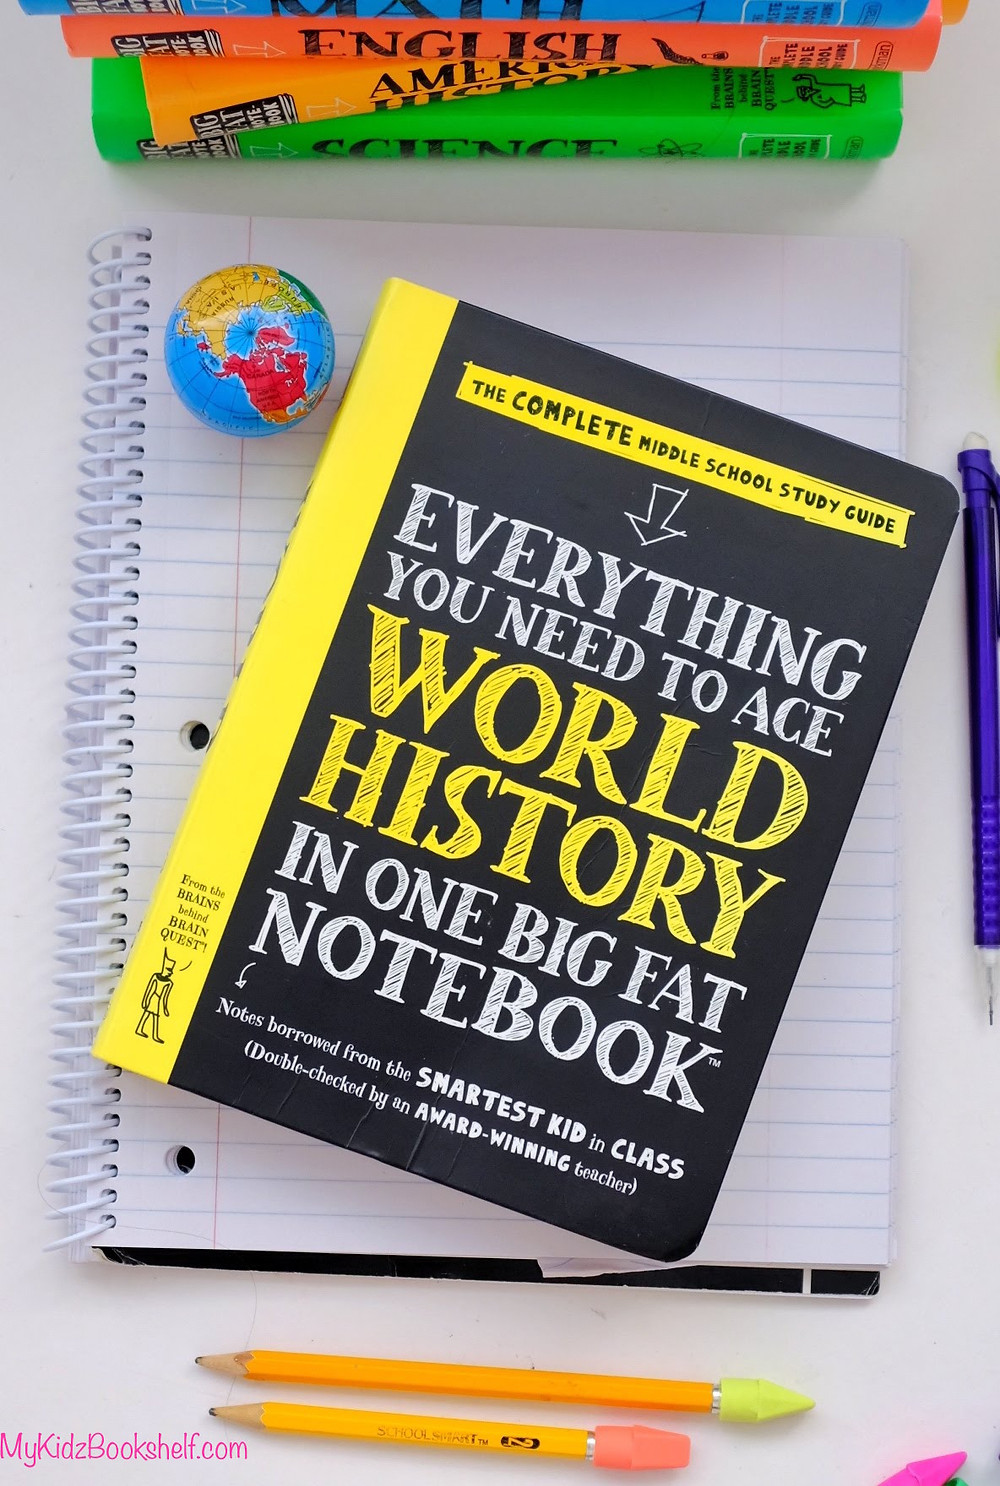 Brain Quest  Everything you need to Ace World History in one Big Fat Notebook